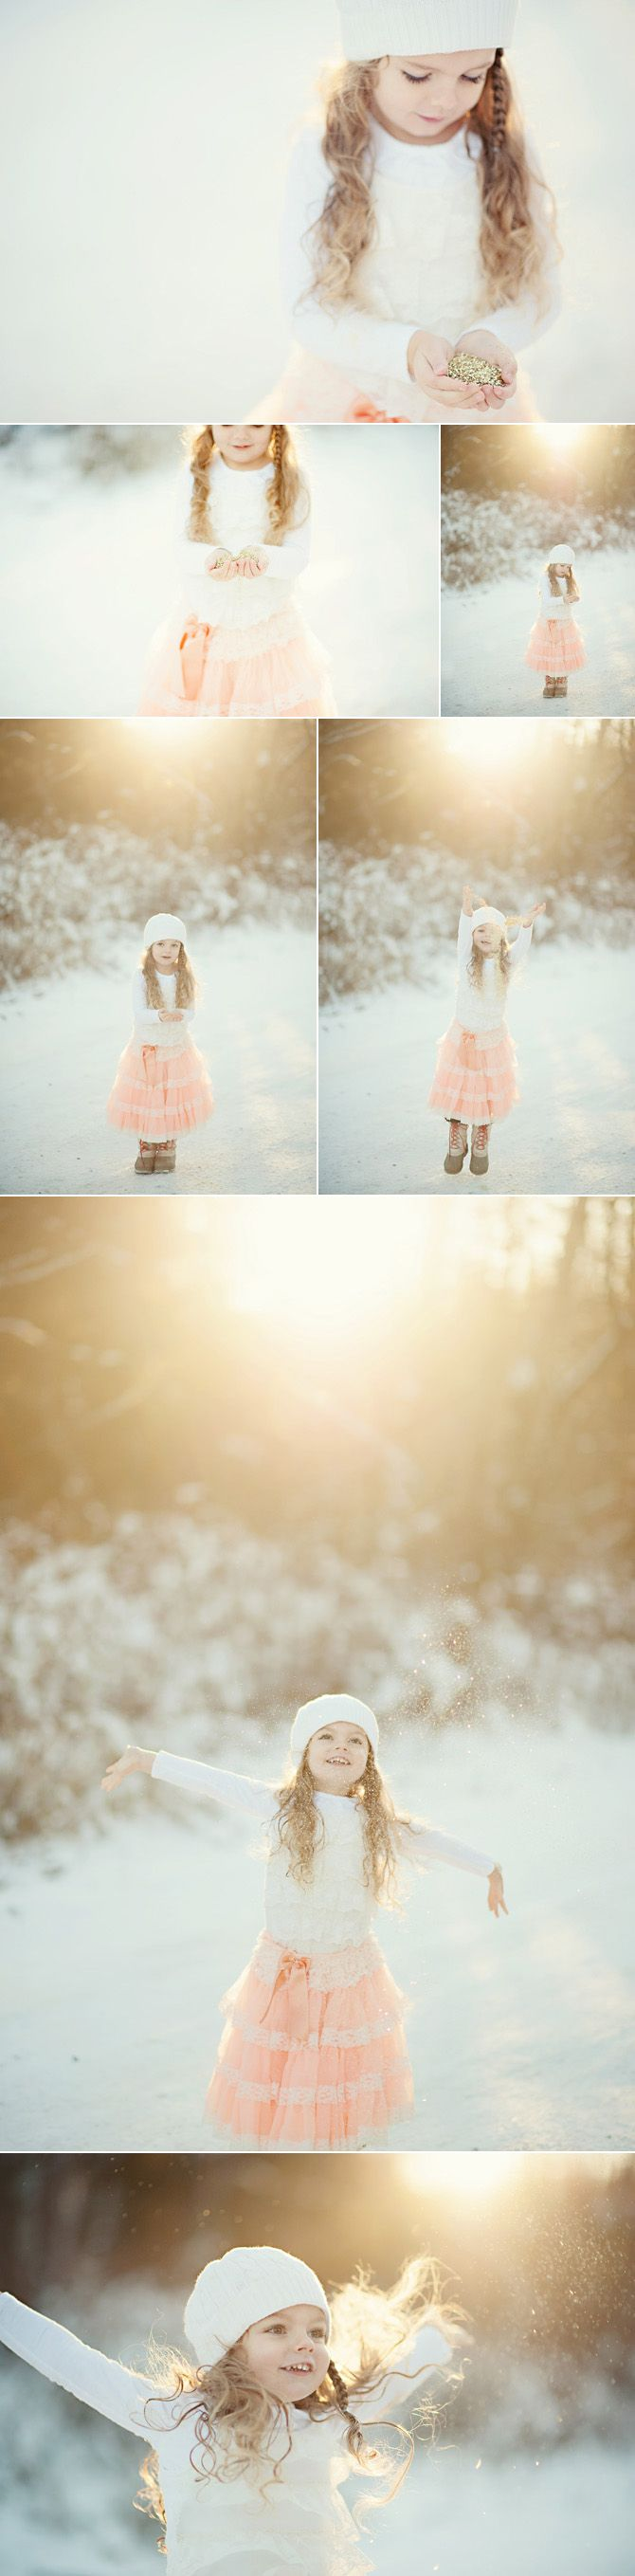 ***i would love a photo shoot like this for us! So pretty***glitter girl, little girl in the snow with glitter, gold glitter, gold glitter photos, photo shoot with glitter, snow glitter girl. letters to maisie, letters to my daughter